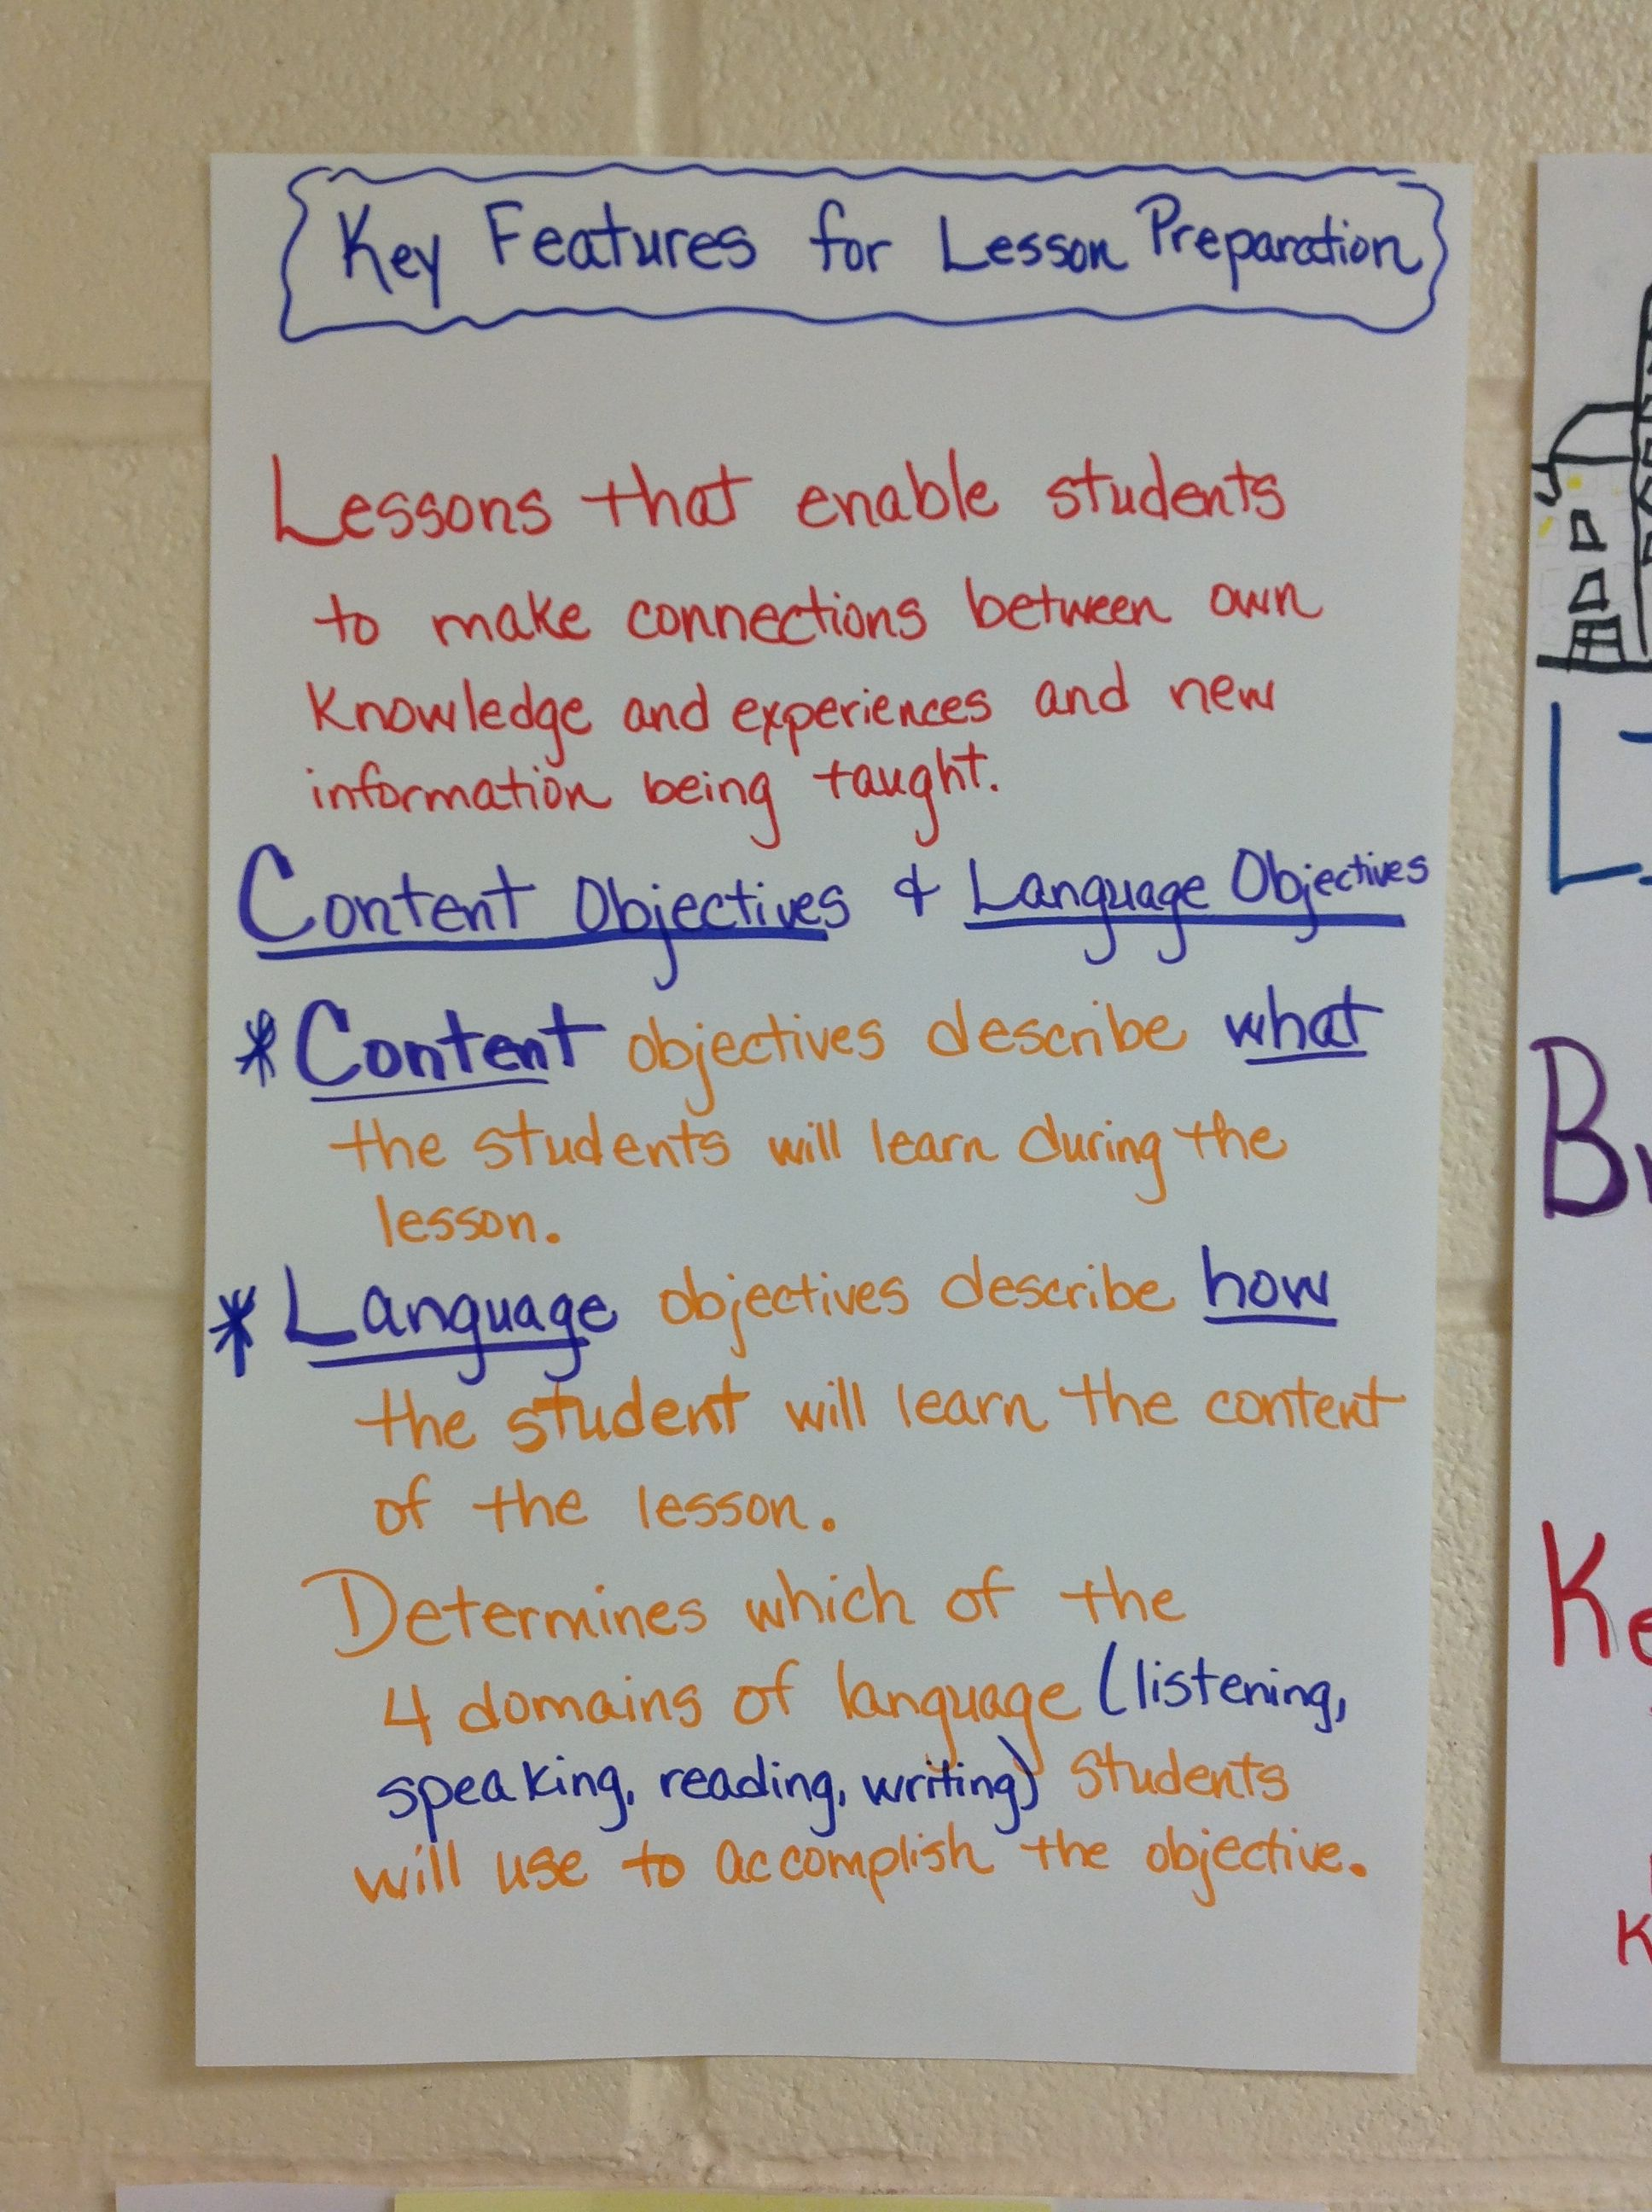 Languages Learning Goals Teaching For The Love Of It Tpt